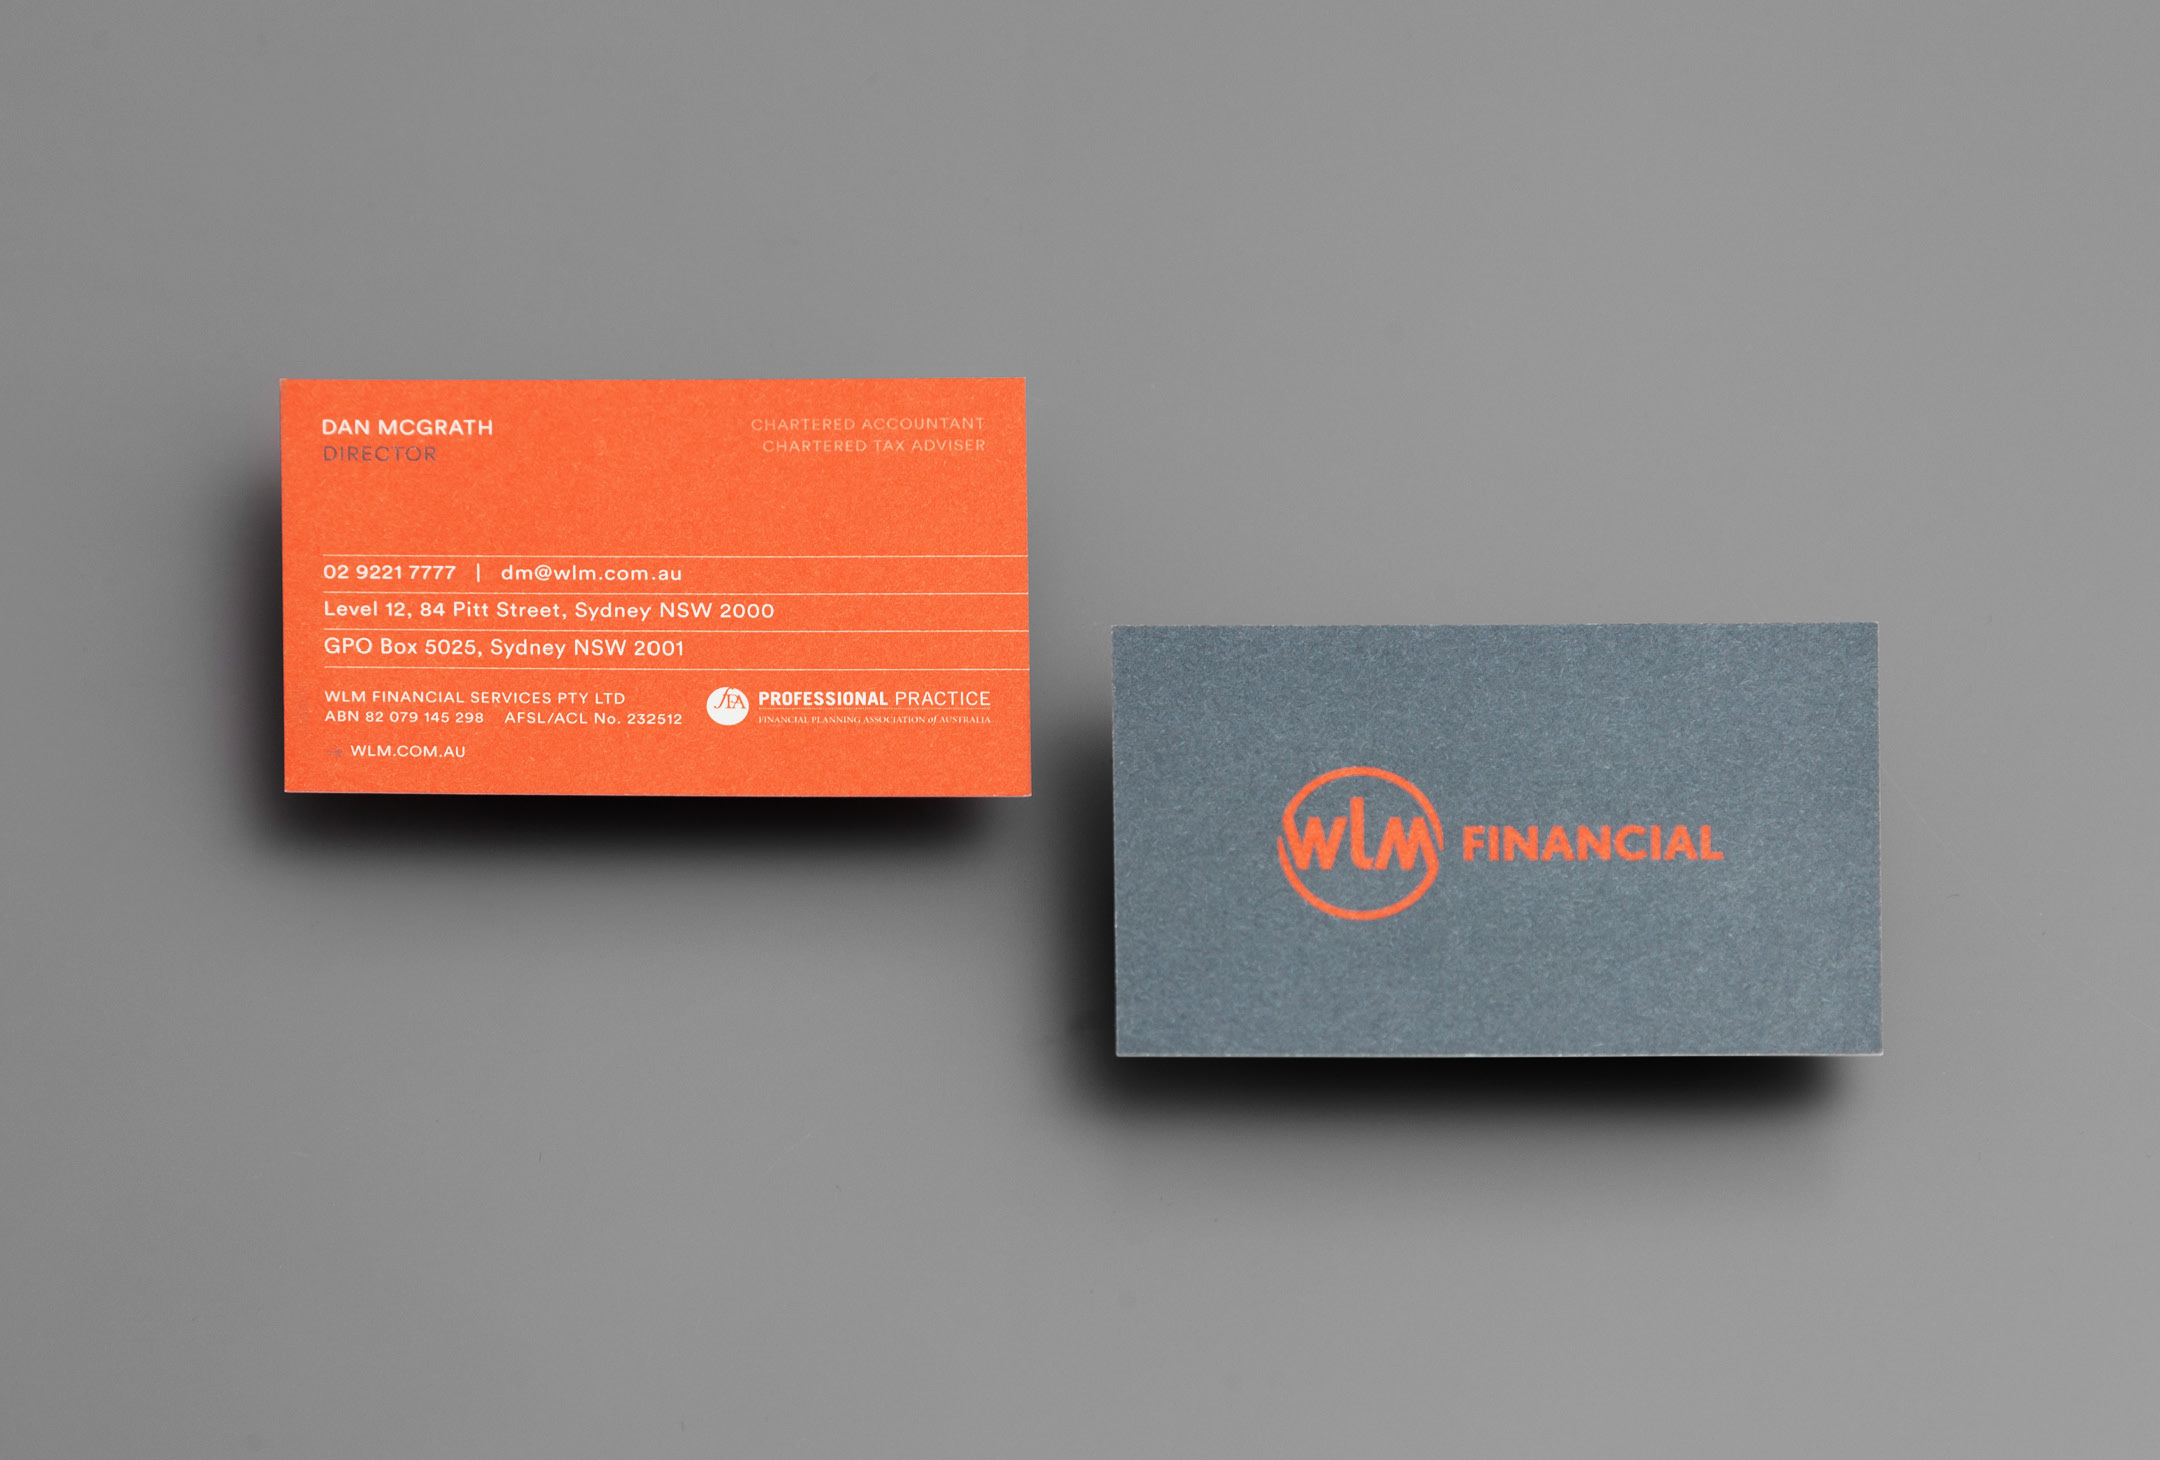 Back and front of business cards, WLM Financial.